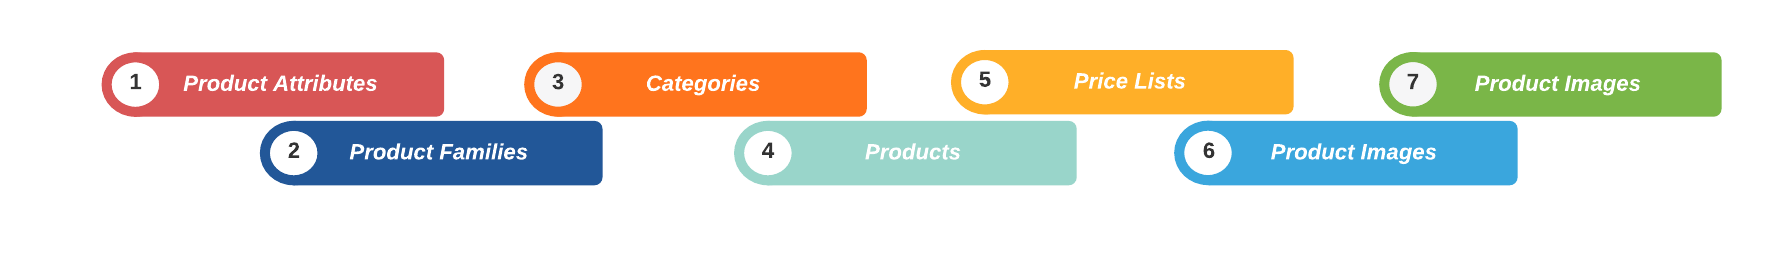 Product Import Sequence